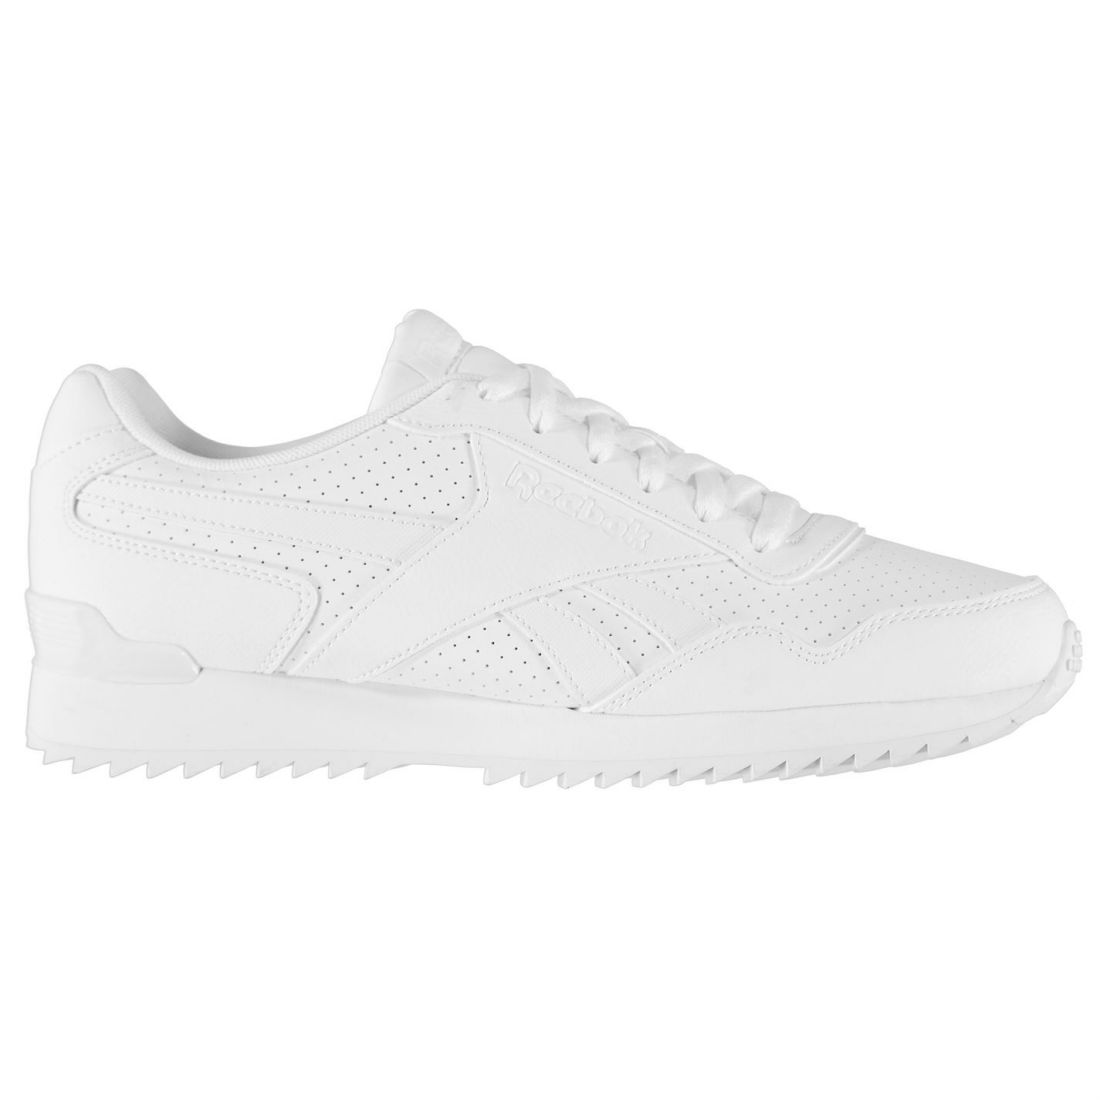 9ecf43a8b10ad Reebok Royal Glide Ripple Clip Sneakers Mens Gents Runners Laces ...